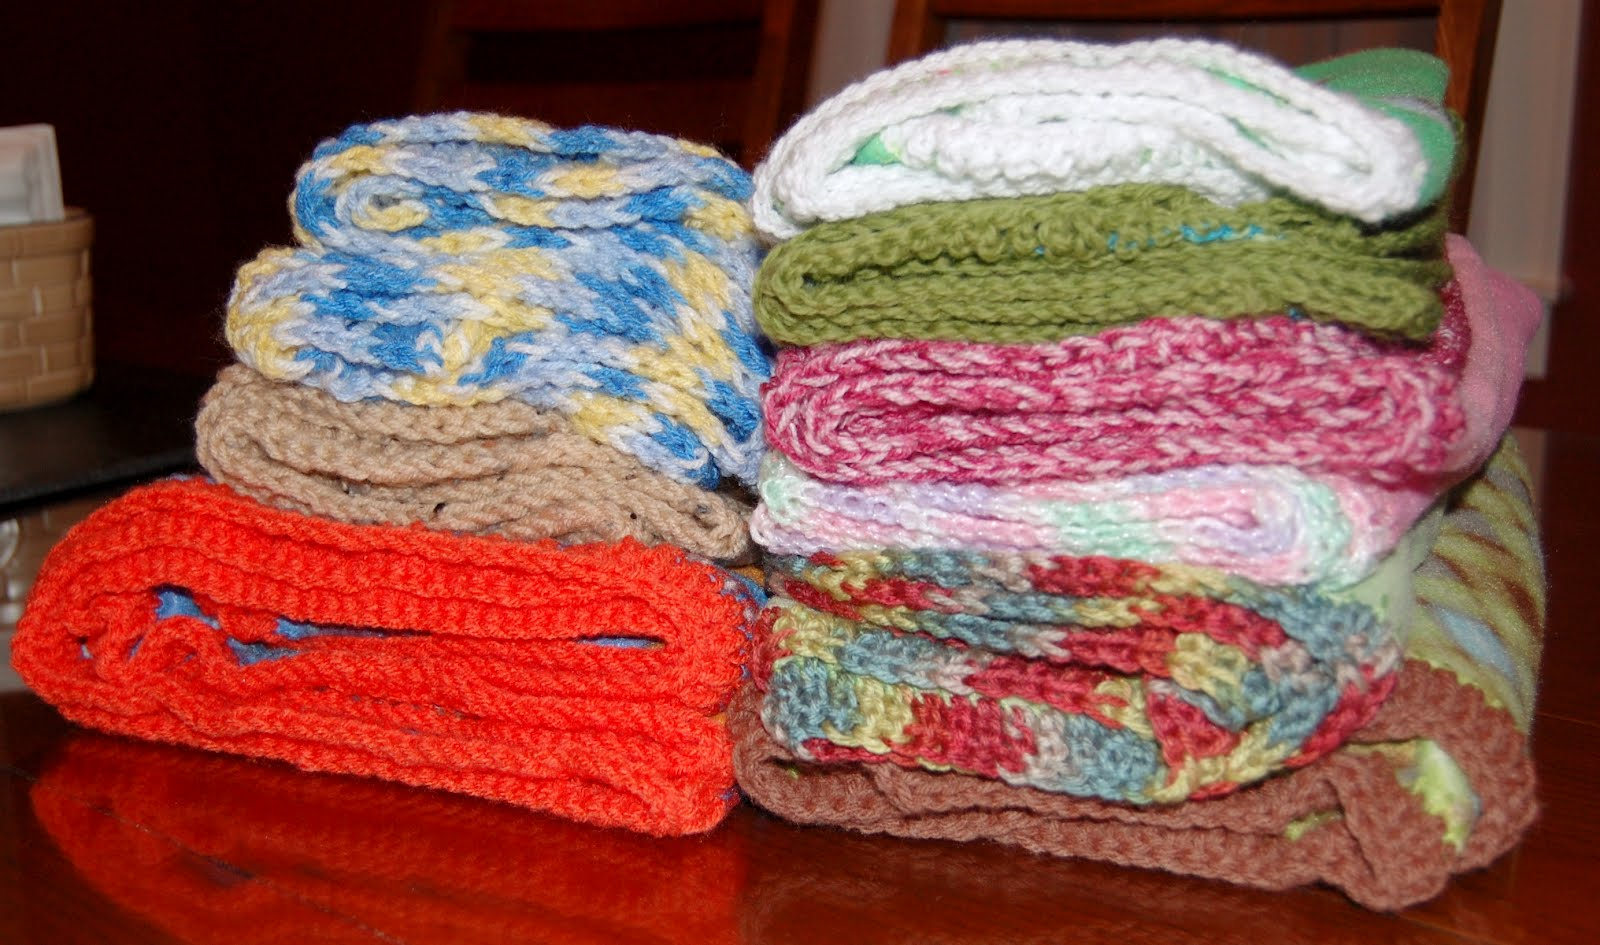 linus blanket project Project linus is a non-profit volunteer organization that provides love, security, warmth and comfort to children who are seriously ill, traumatized or otherwise in need through gifts of lovingly created handcrafted blankets and quilts.